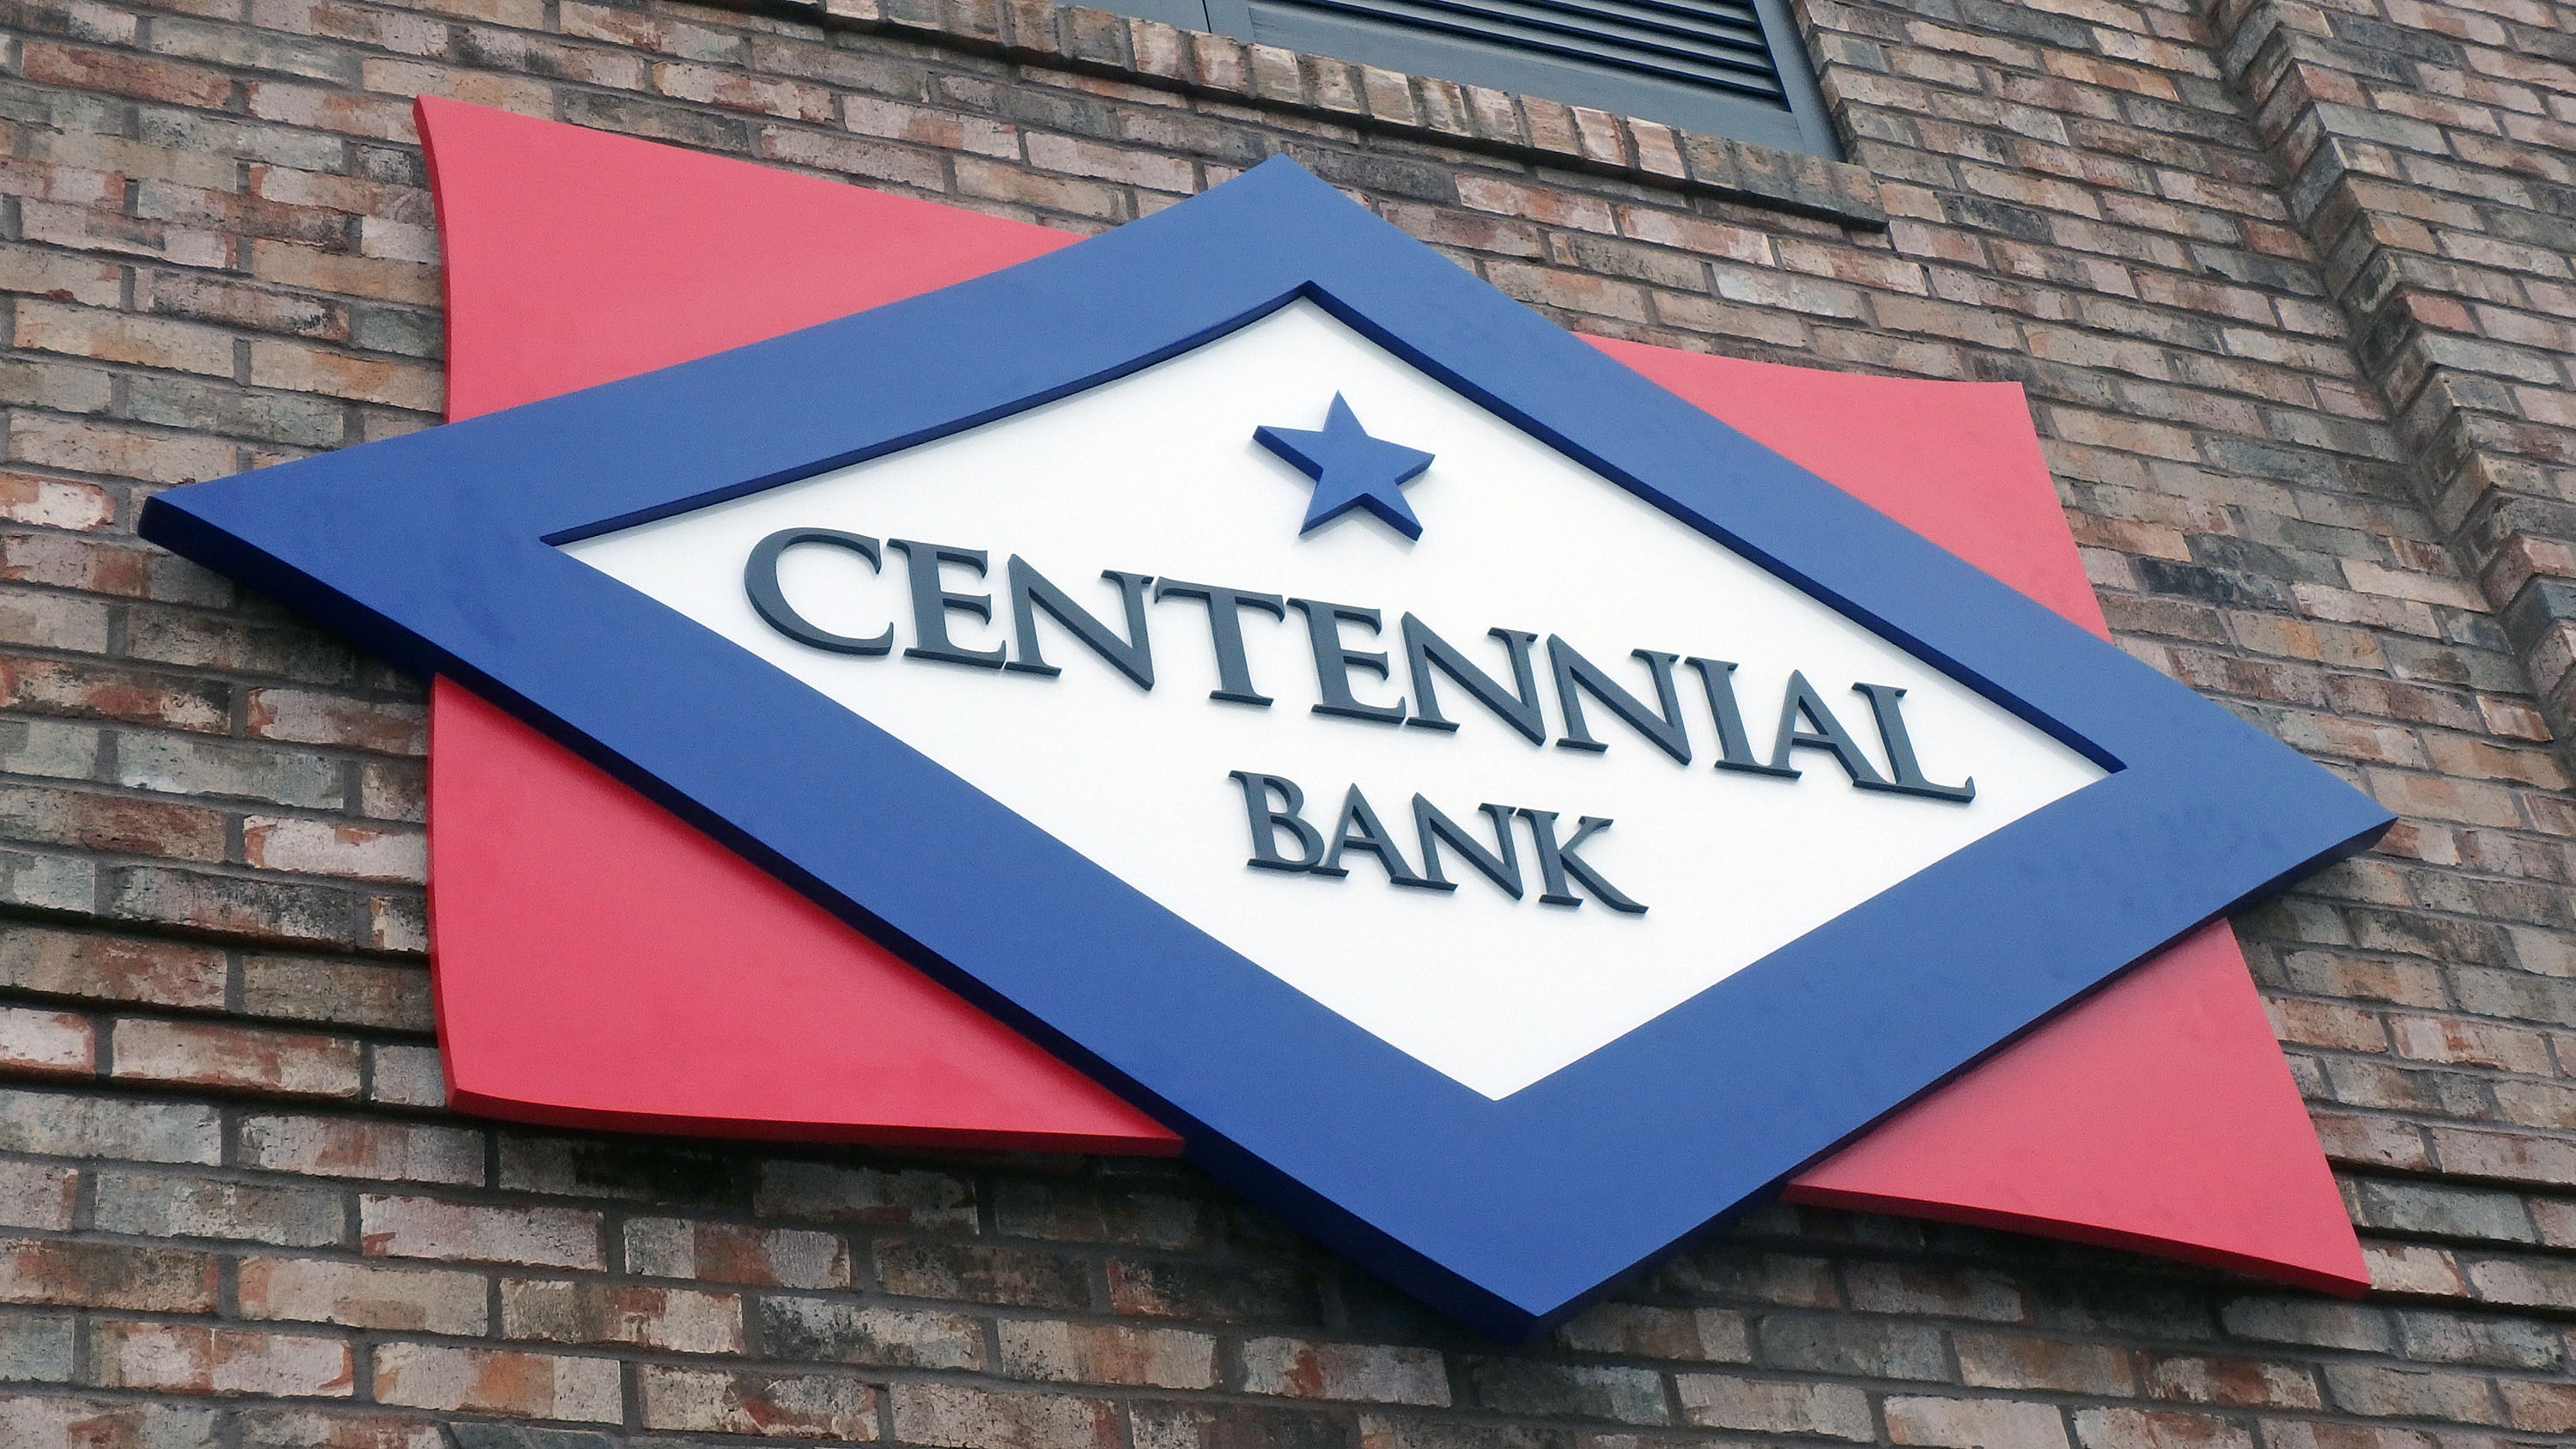 Architectural signage on Centennial Bank by Pensacola Sign